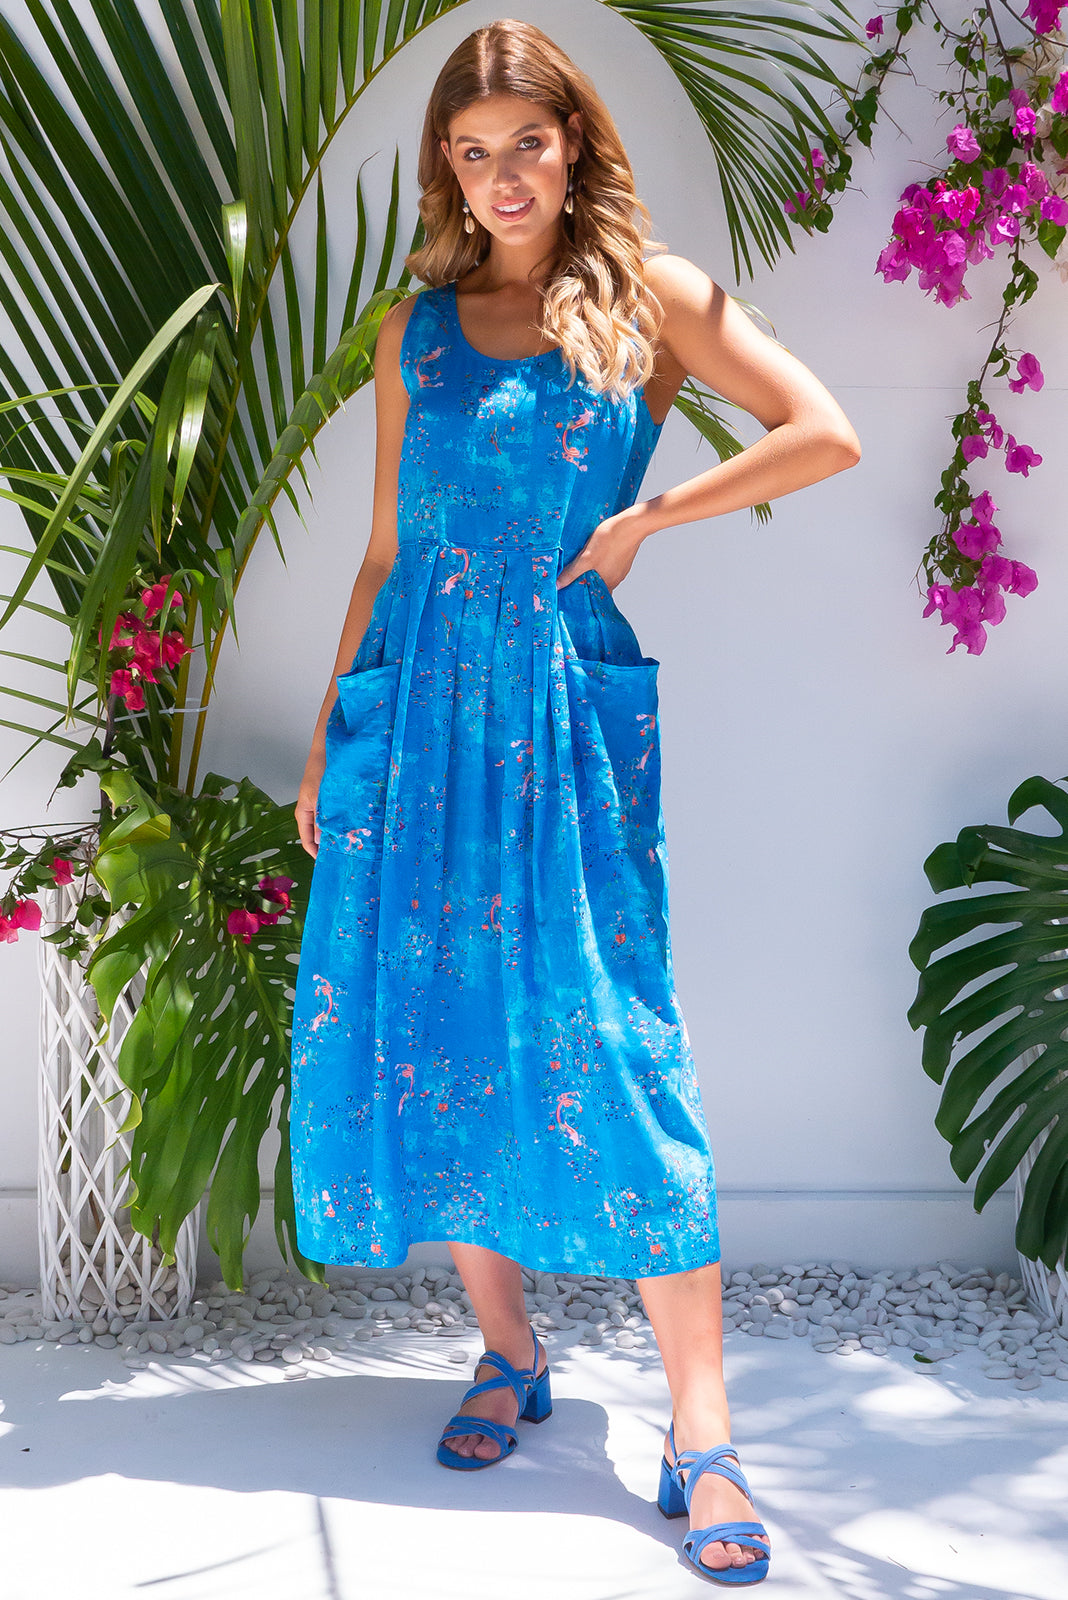 Bondi Beach Pacific Blue Dress, bohemian summers style, 100% cotton, slightly sheer, deep front pockets, adjustable waist with three coconut buttons on each side at the back allowing garment to be cinched, print placement will be different on all dresses, bright blue mottled colour with small navy, orange and white abstract print.